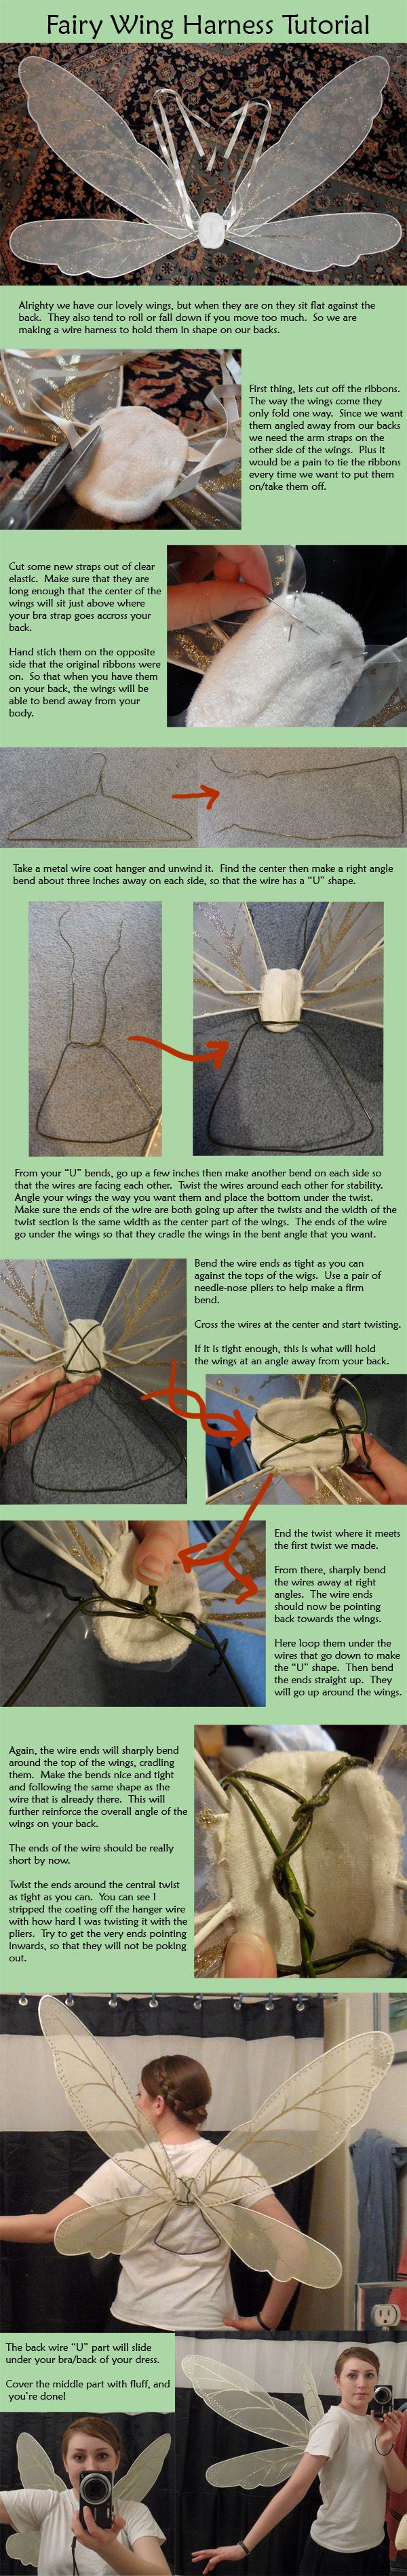 Fairy Wing Wire Harness Tutorial By Naerko Cosplay Tips And Tricks How To Build A